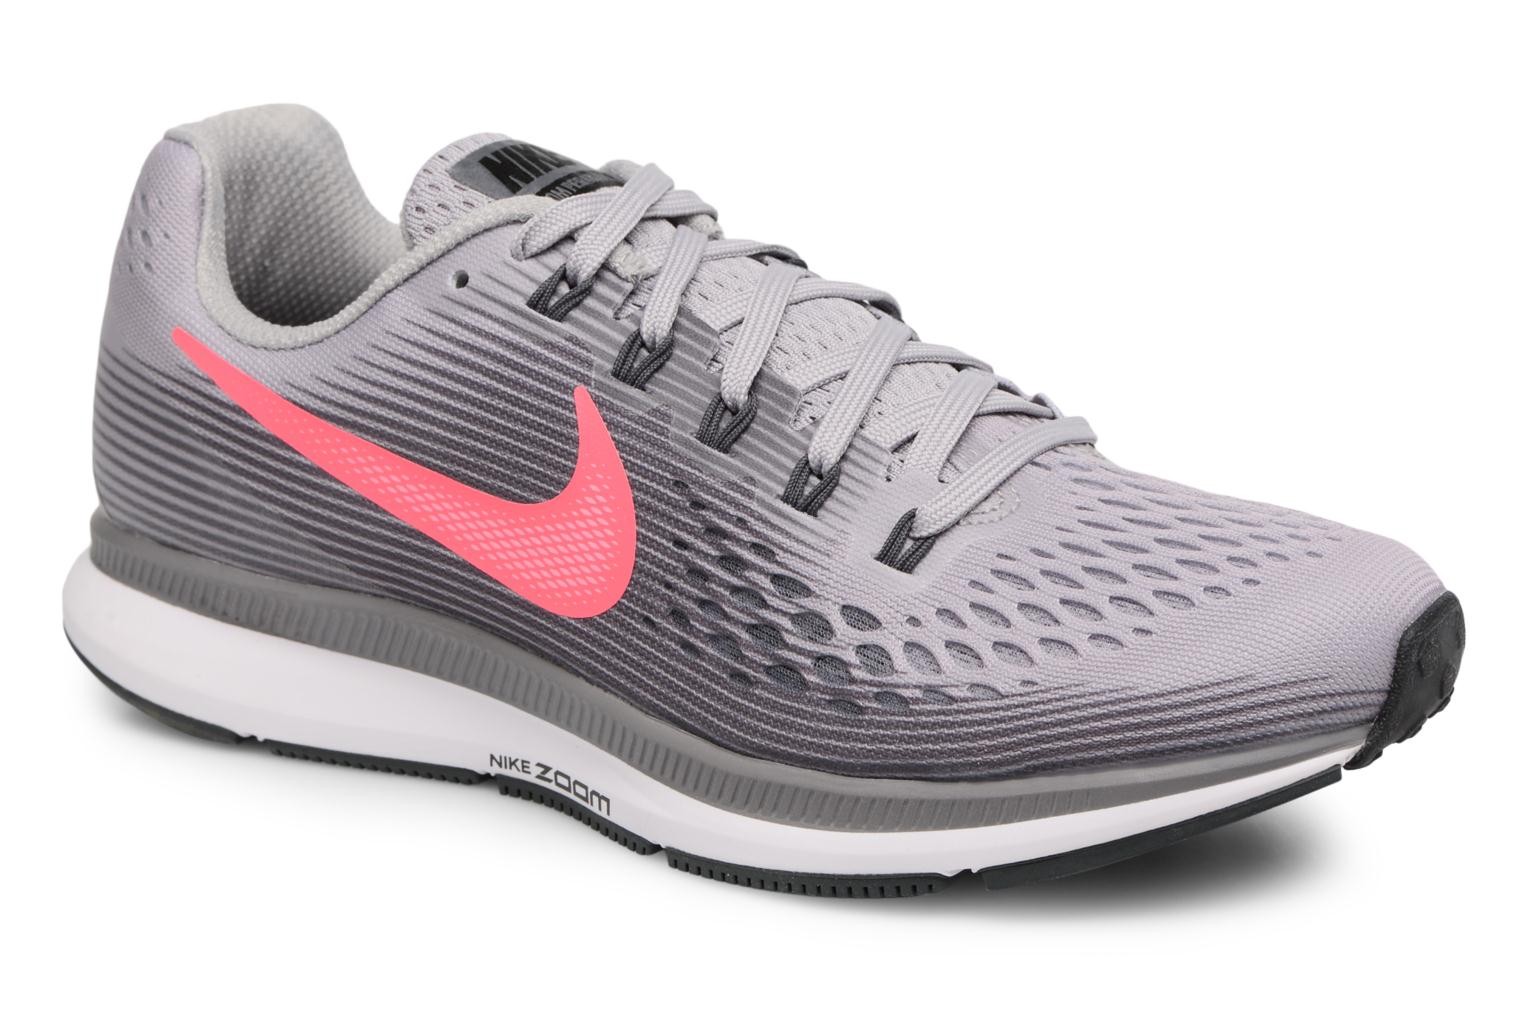 Wmns Nike Air Zoom Pegasus 34 Atmosphere Grey/Racer Pink-Gunsmoke